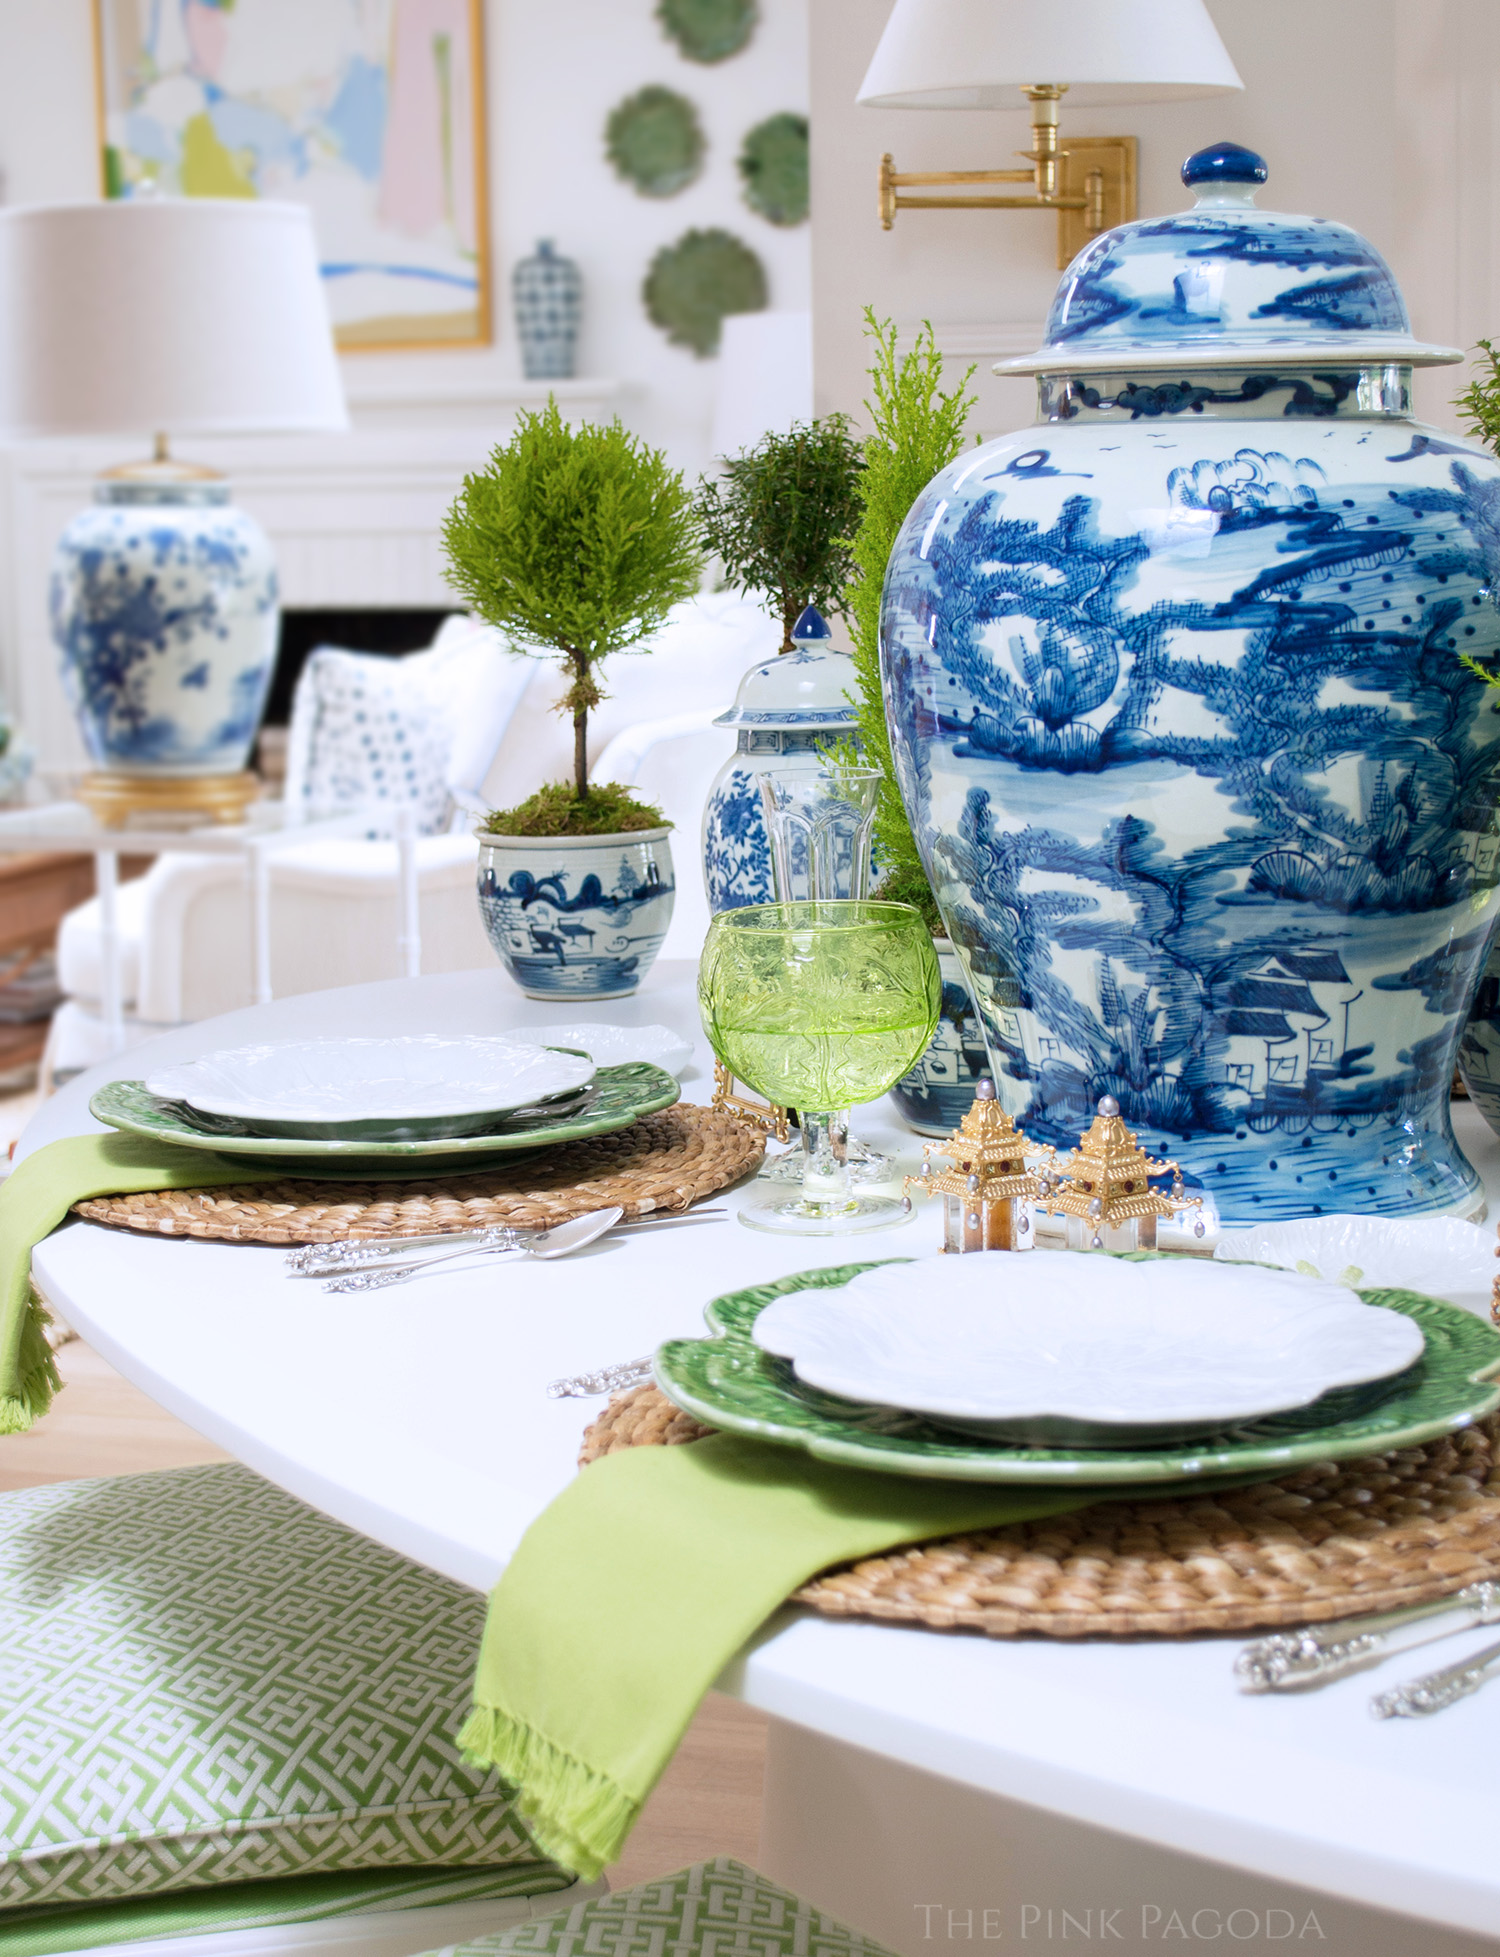 Breakfast table in The Pink Pagoda's Fall 2017 One Room Challenge™ with topiaries, Bordallo Pinheiro green cabbage dinnerware, L'objet accessories, and blue and white ginger jars.